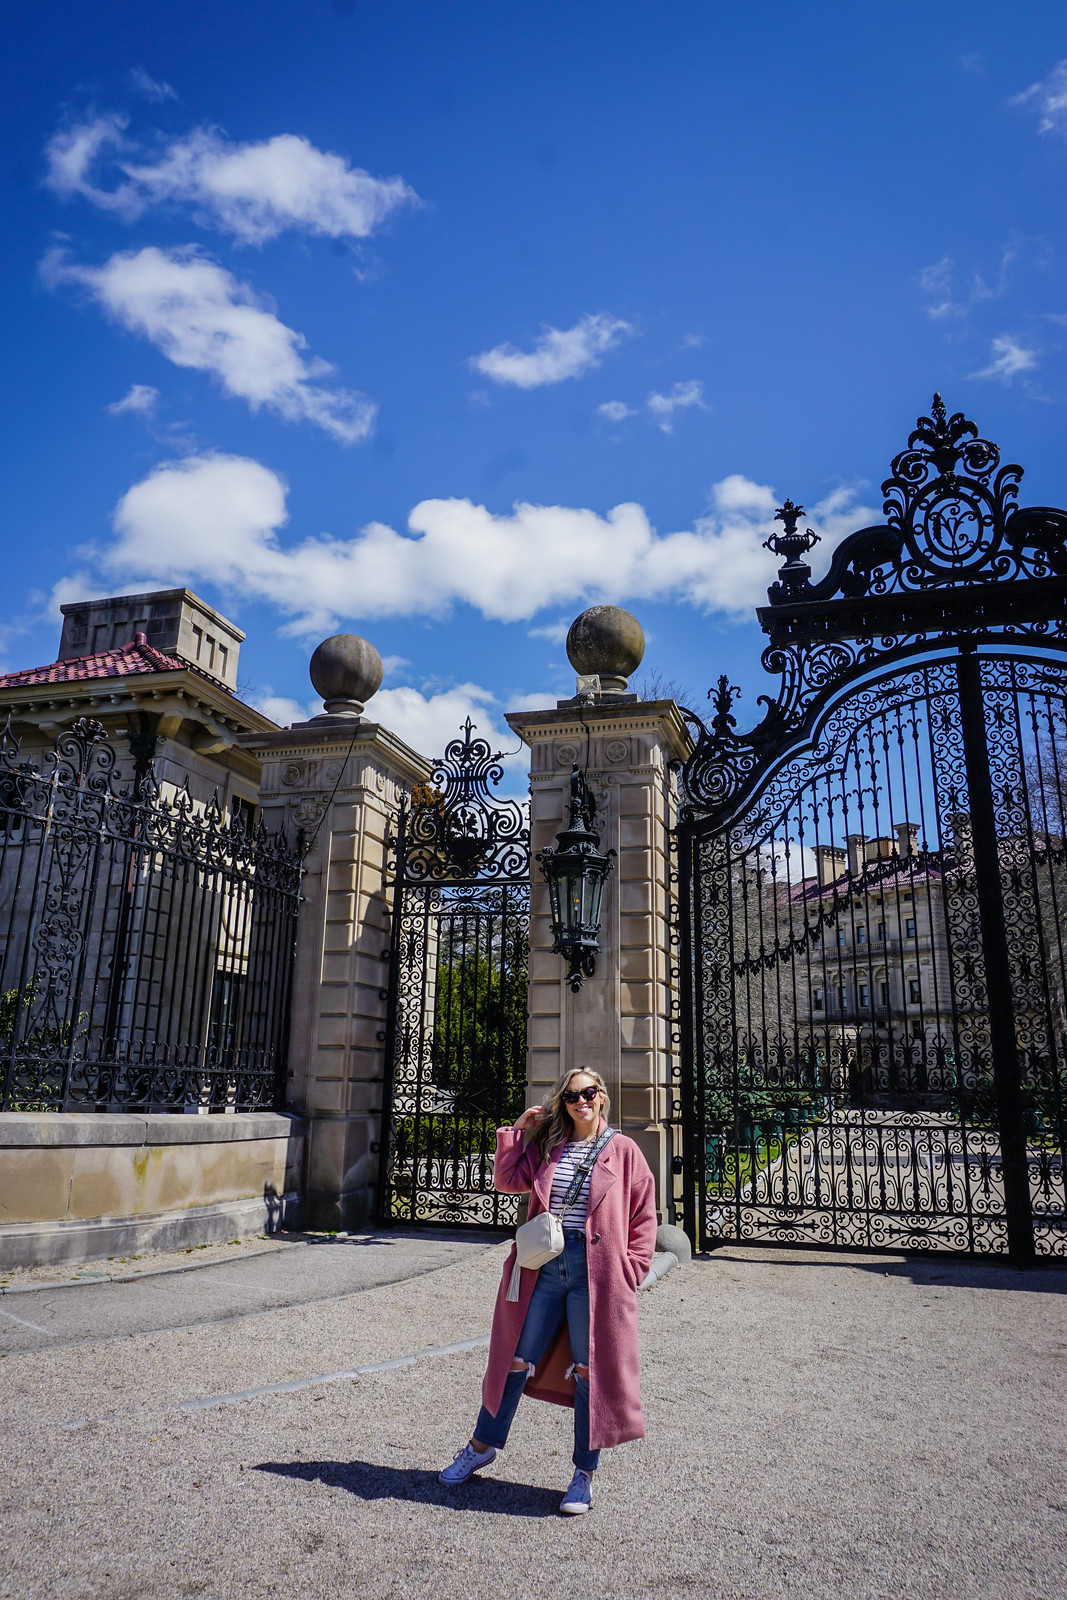 The Breakers Newport Mansion Vanderbilt Summer Cottage | 48 Hours in Newport Itinerary | A First Timer's Guide to 2 Days in Newport Rhode Island | What to do in Newport | Newport Travel Guide | Best Things to do in Newport | Best Places to Visit in Newport